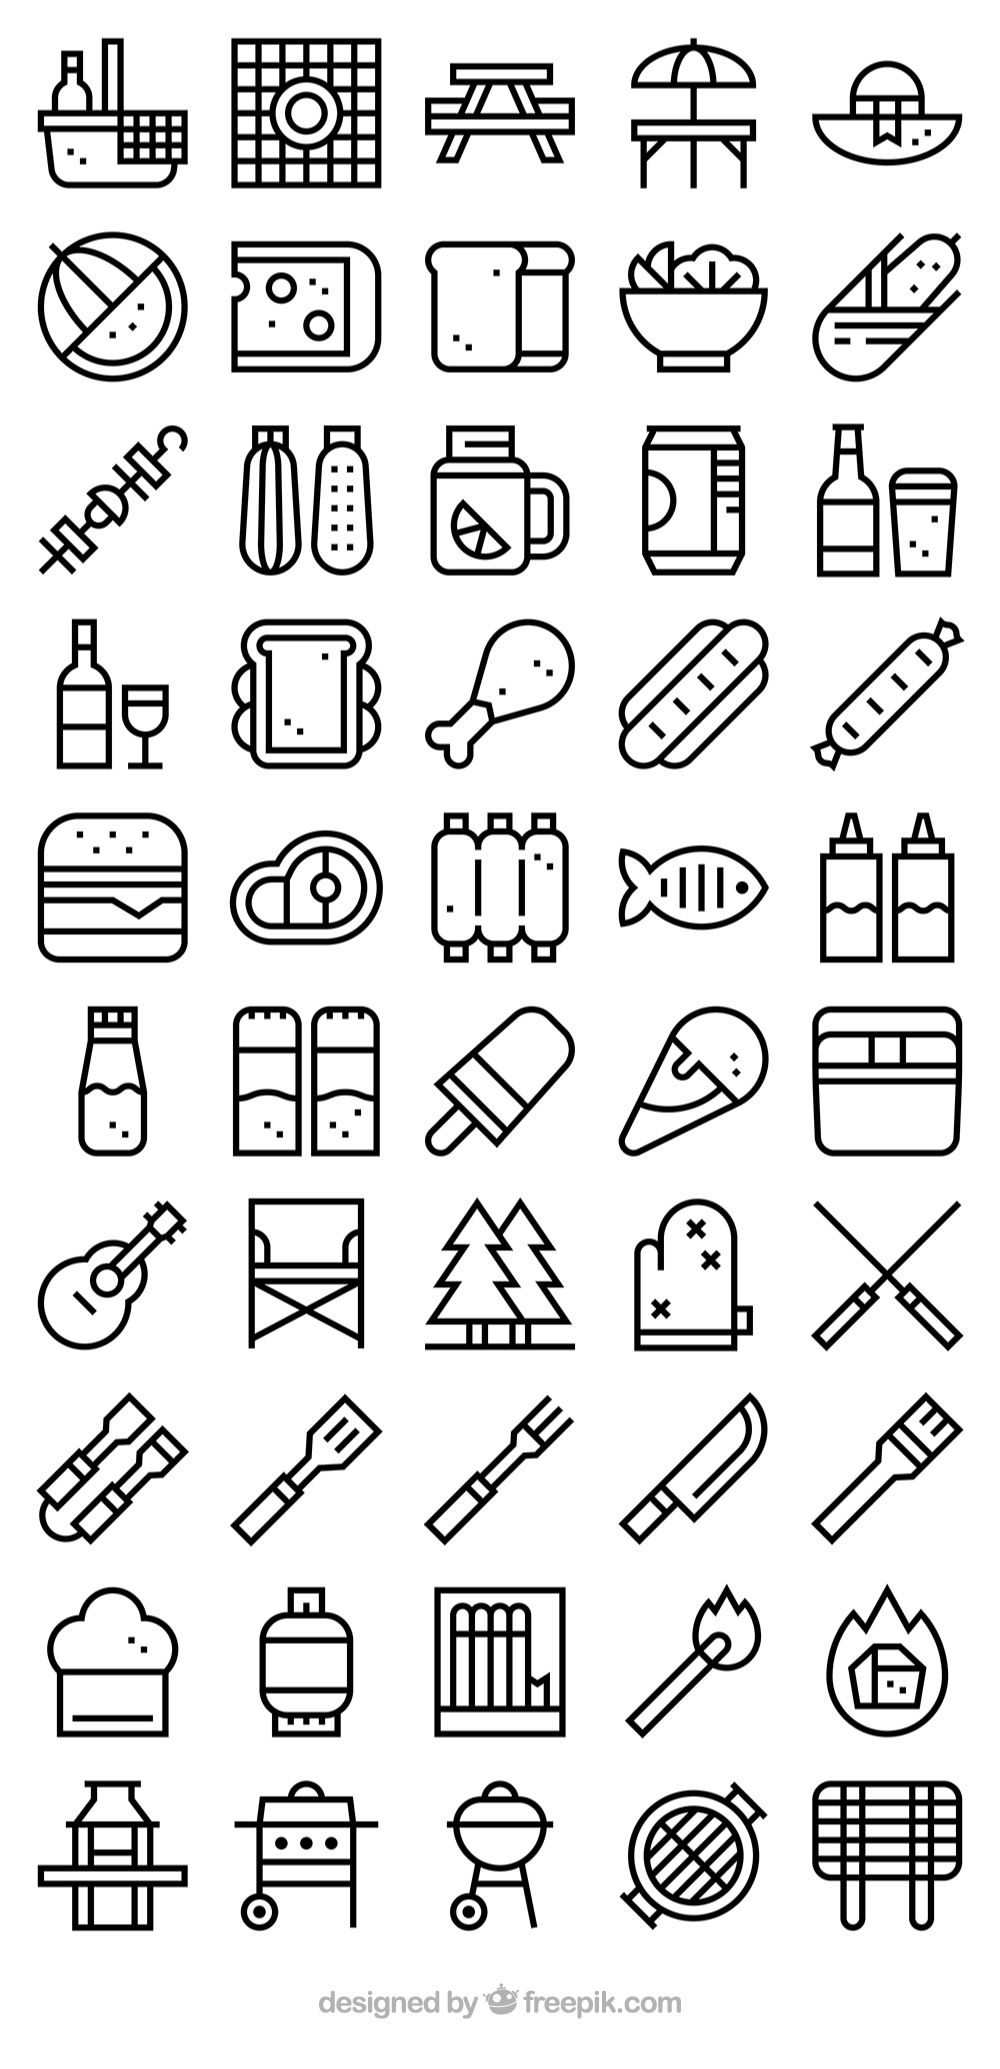 50 free vector icons of barbecue collection designed by